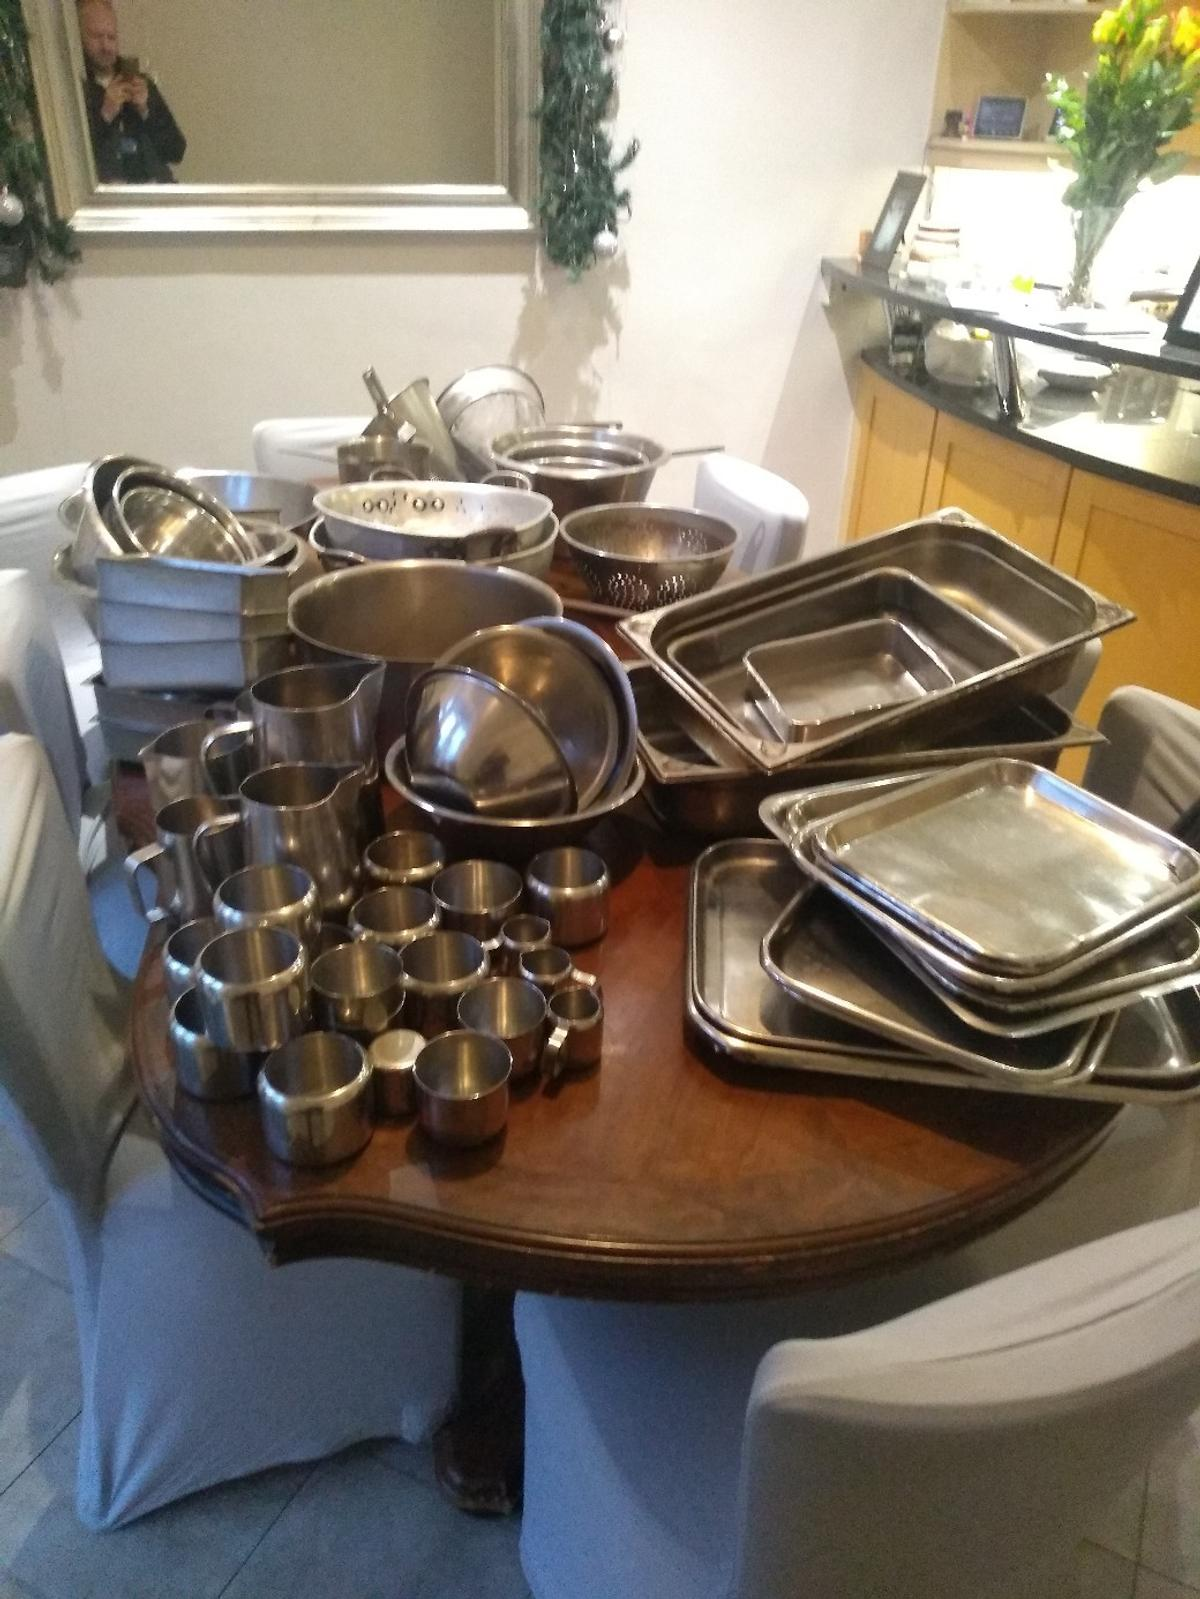 Stainless steel & Aluminum restaurant equipment,68 pieces in total all in fair to good condition. Everything from large pans to oven trays and sugar bowls.